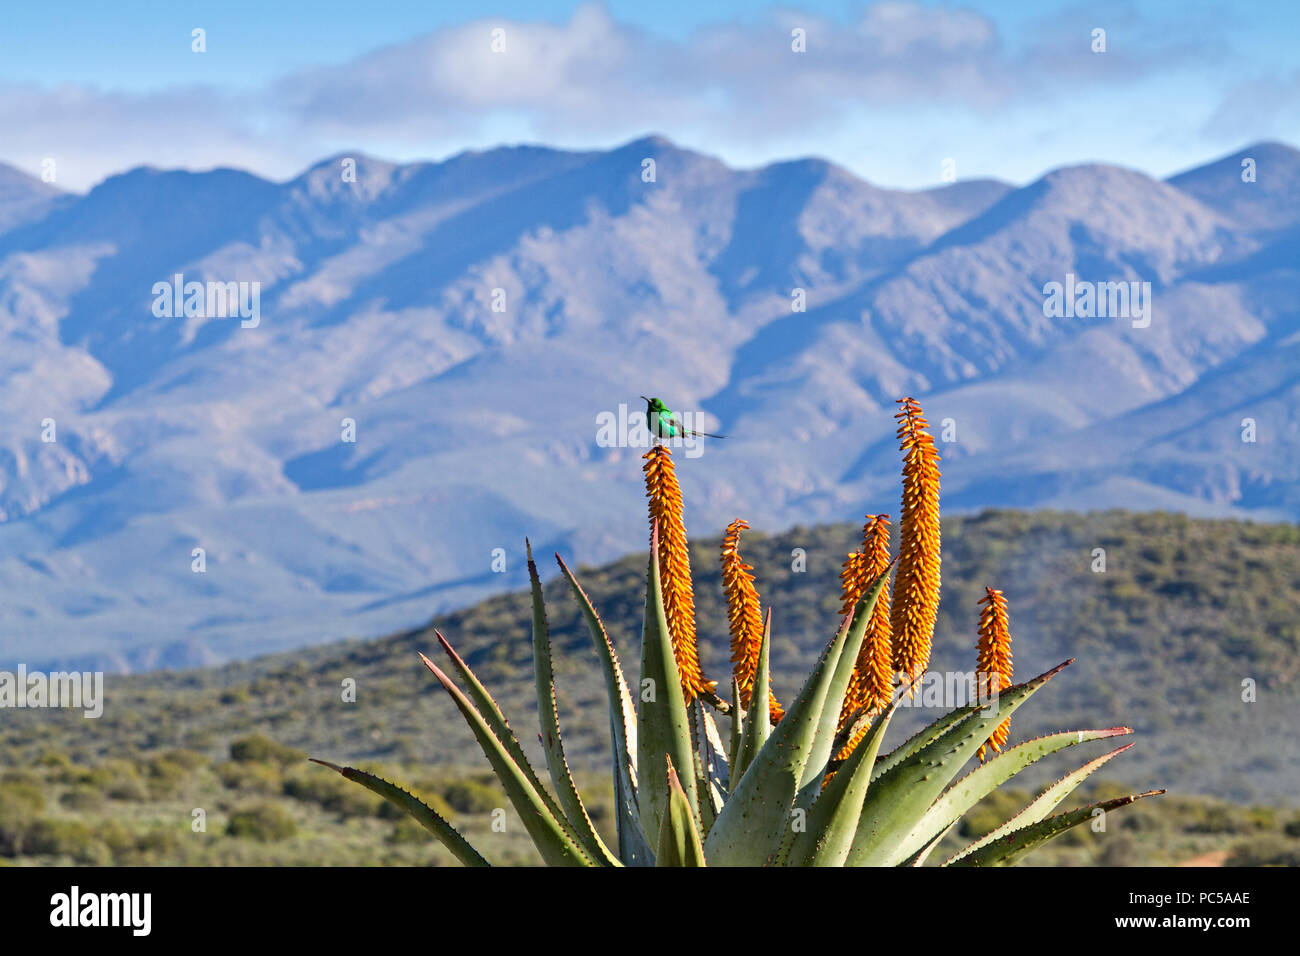 Flowering Aloe with mountains - Stock Image